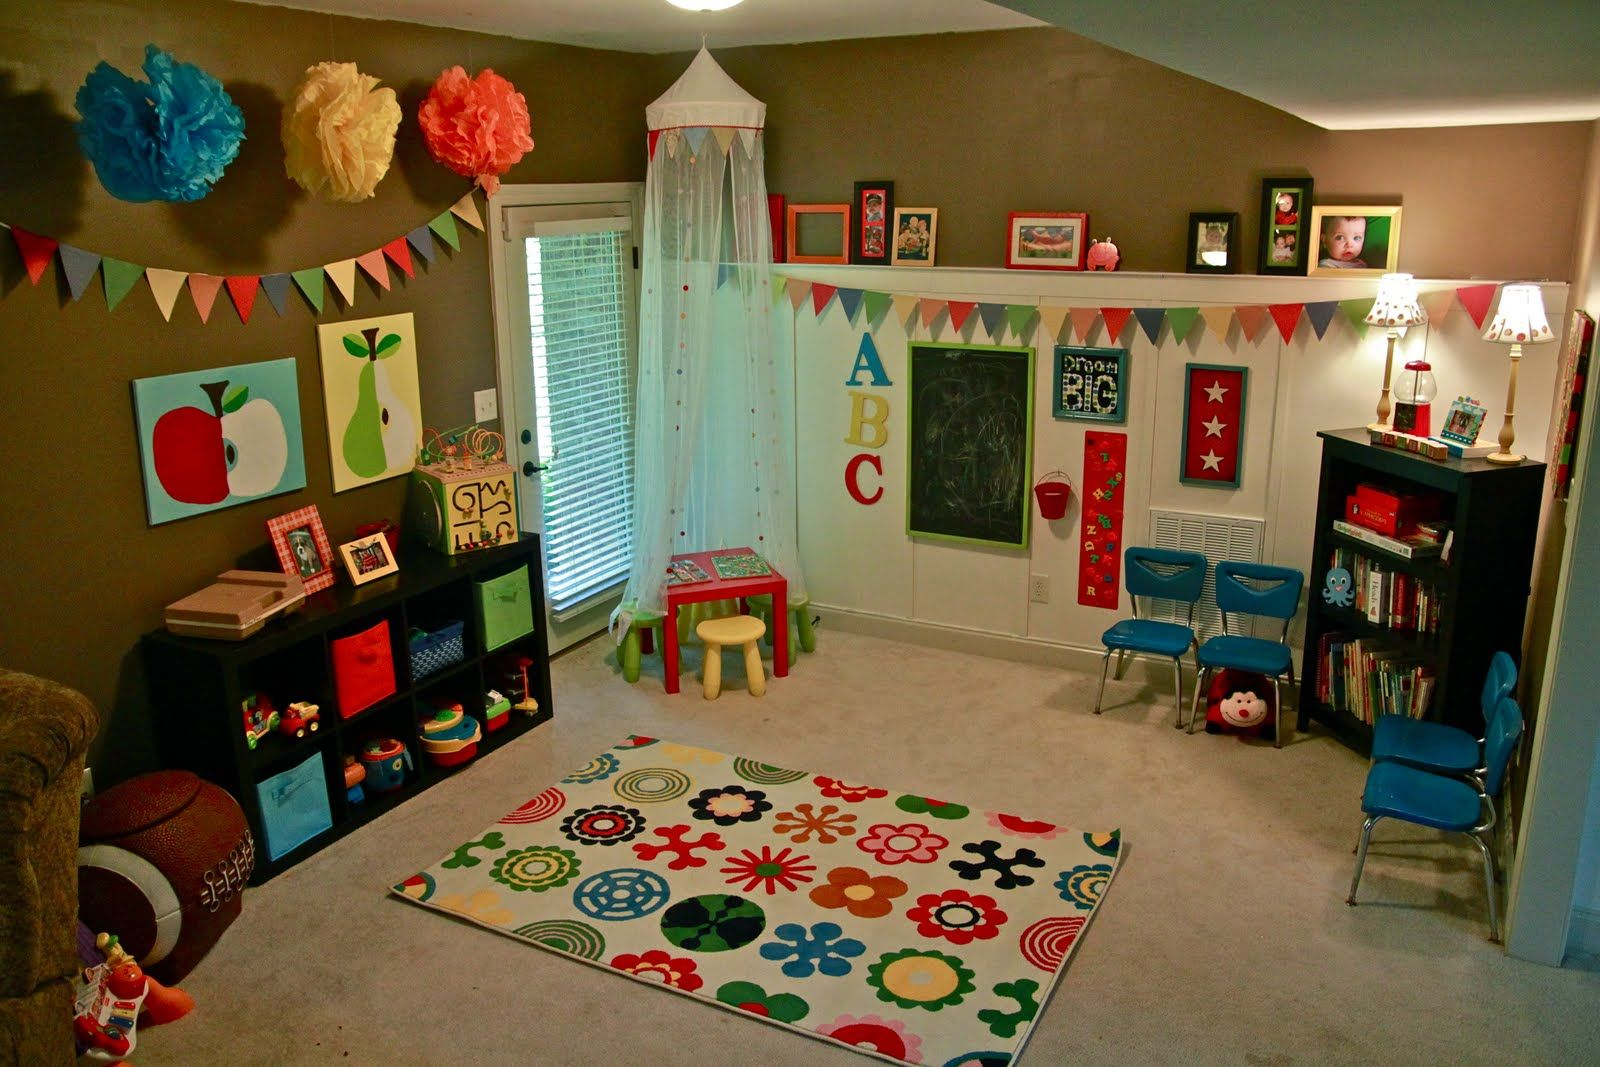 ikea playroom furniture. Amazing Decoration For Kids Playroom Furniture Ikea Design Ideas : Minimalist Colorful Lantern In Green Wall R